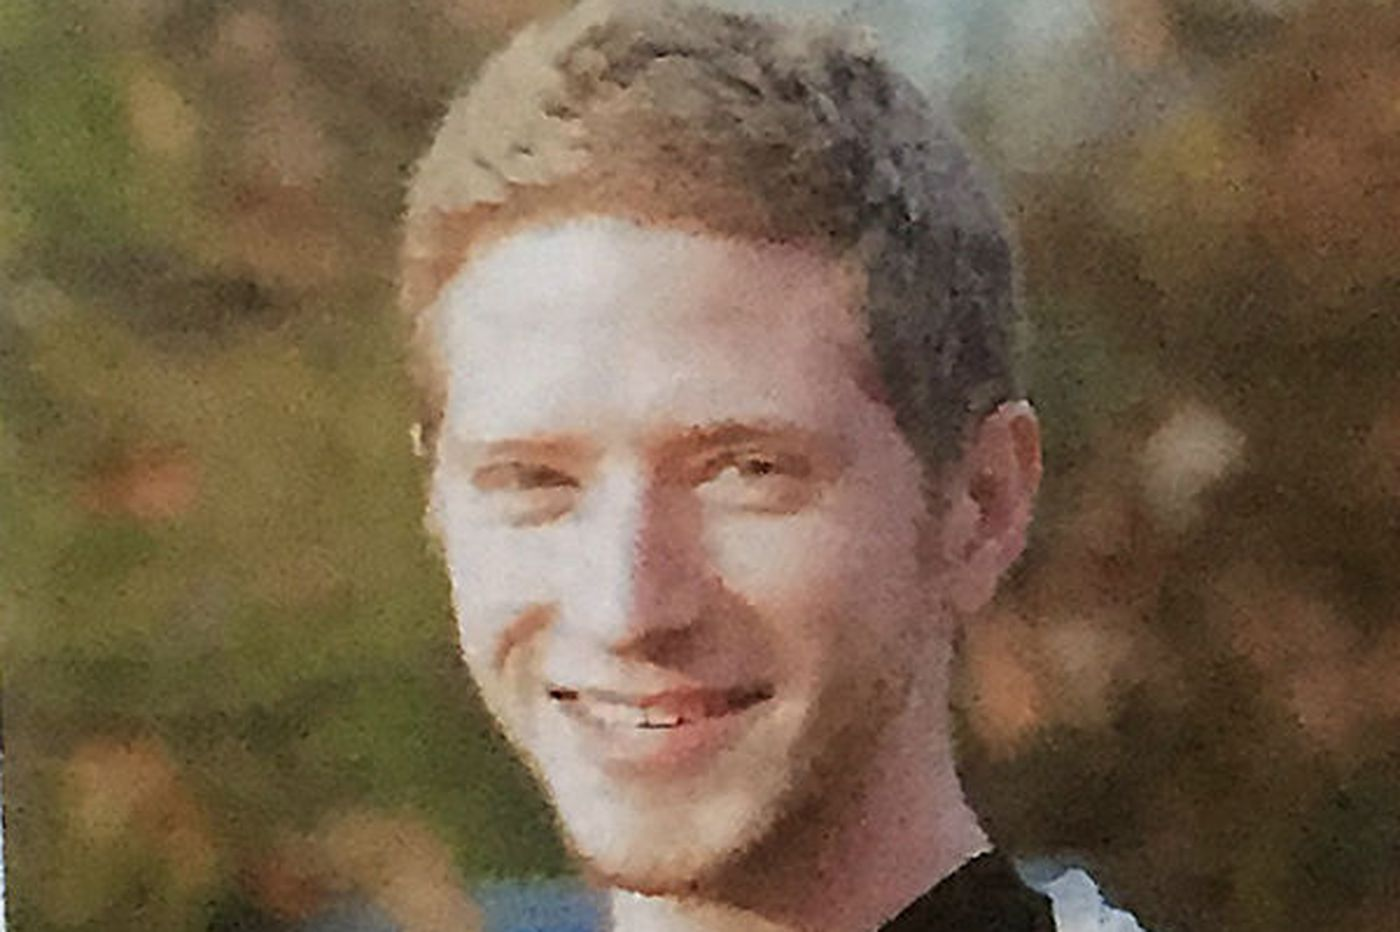 Two weeks on, video of missing Roxborough college student surfaces